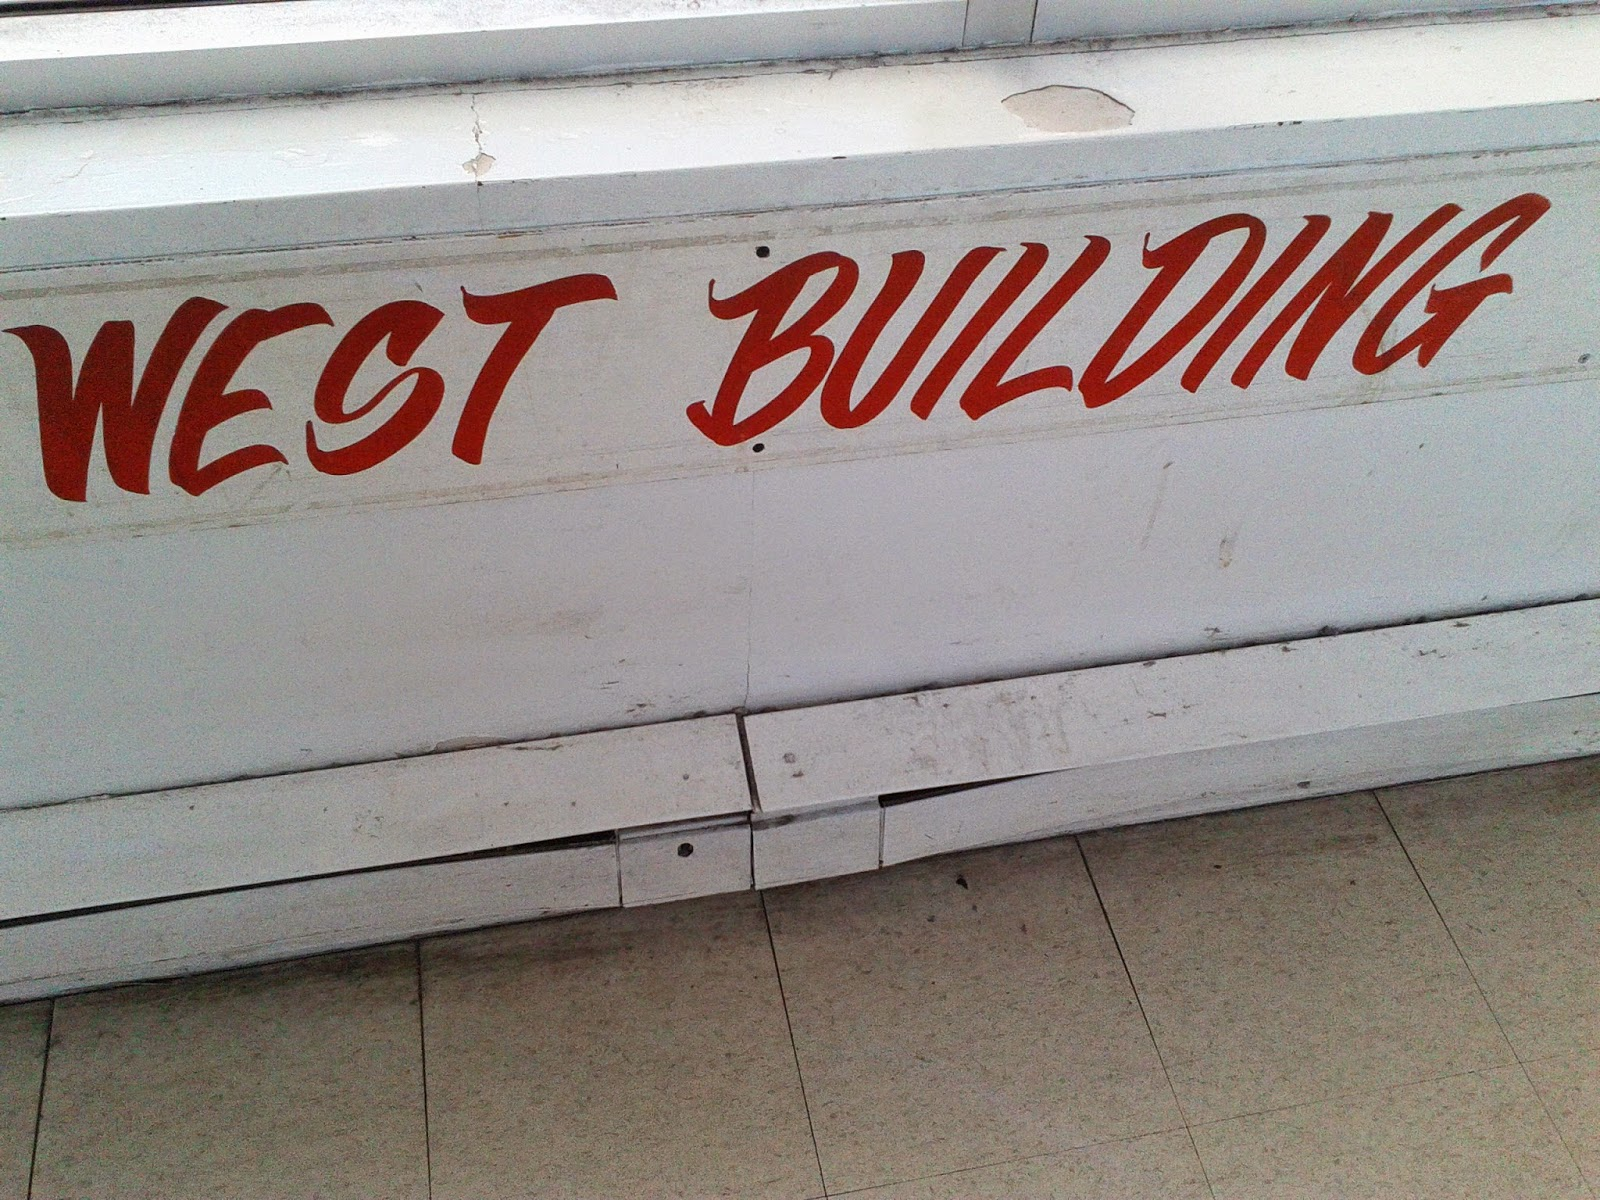 Stock photo: West building sign